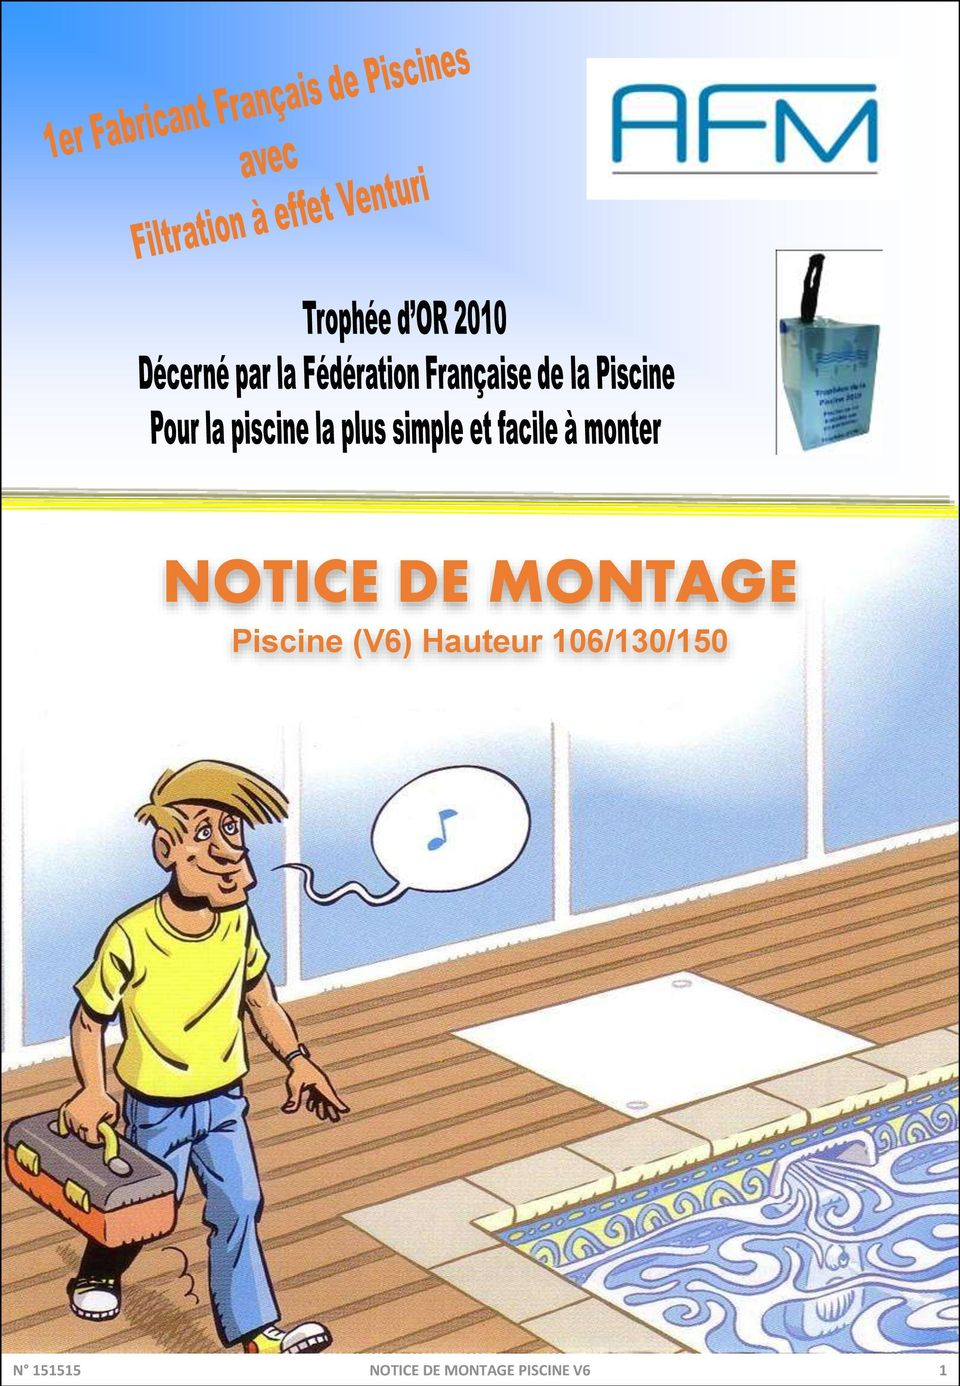 Notice de montage piscine v6 hauteur 106 130 150 n for Refoulement piscine miroir